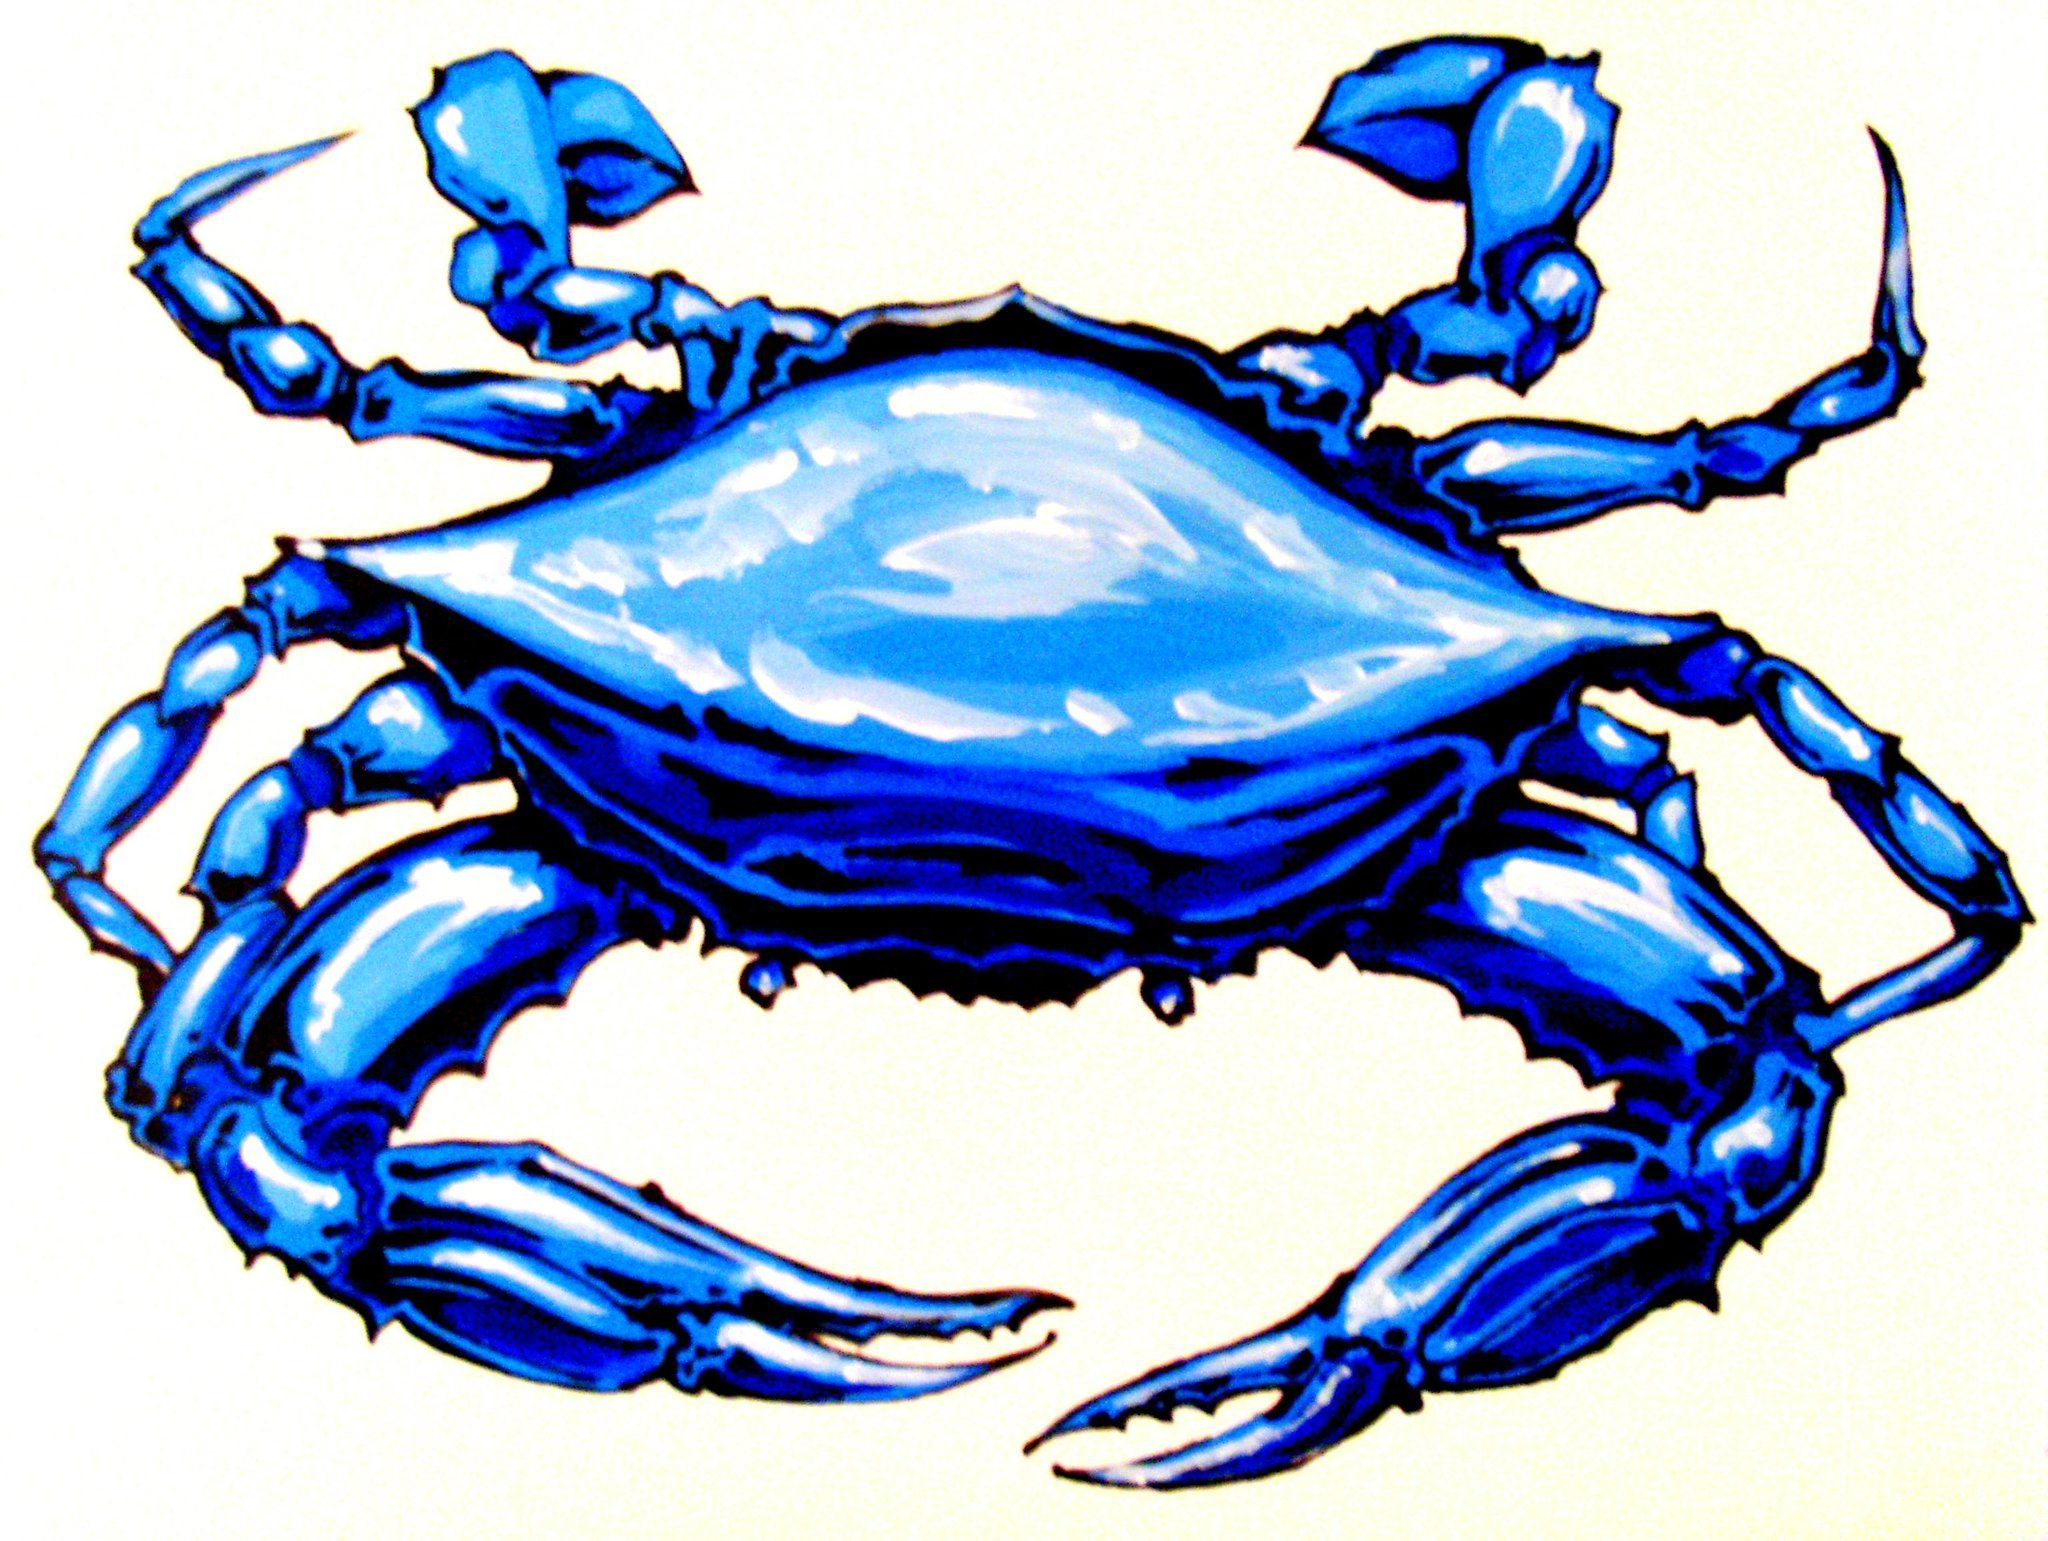 blue crab painting clipart panda free clipart images [ 2048 x 1541 Pixel ]